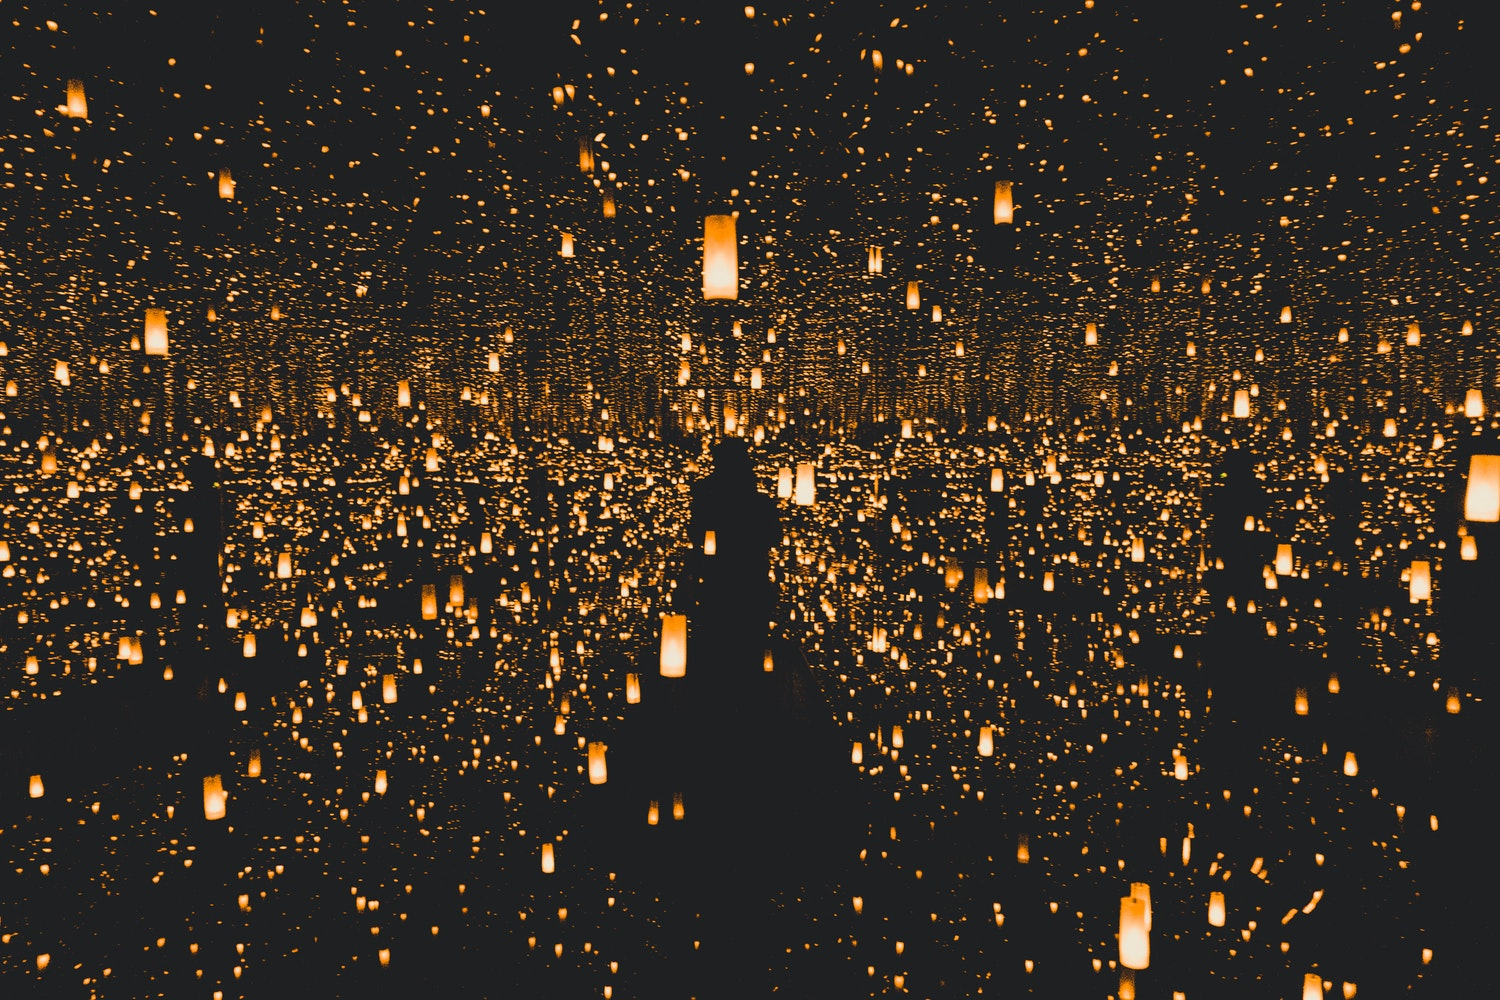 Thousands of floating lights illuminating a dark area.